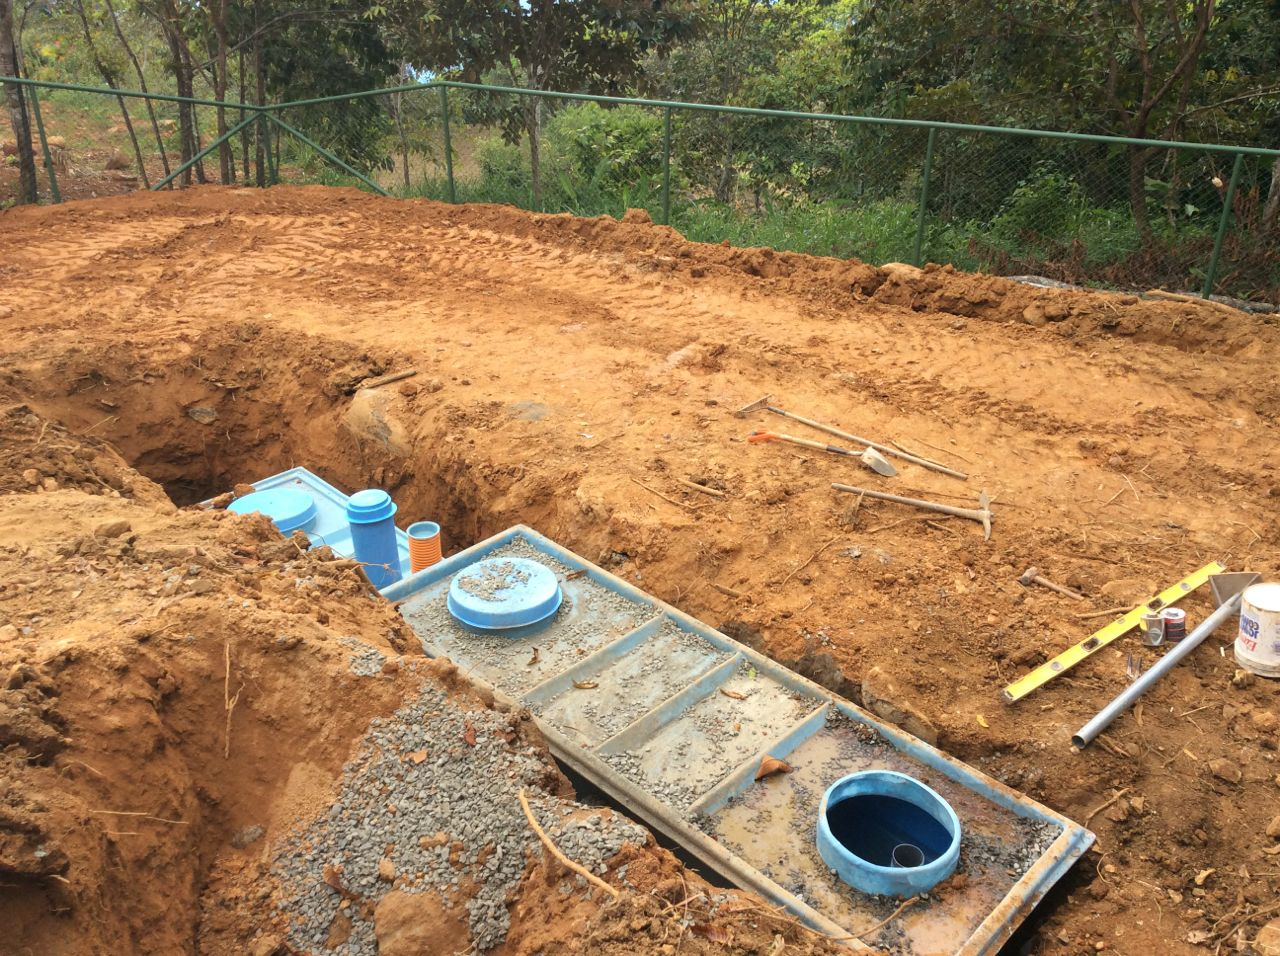 Septic tank and biofilter in